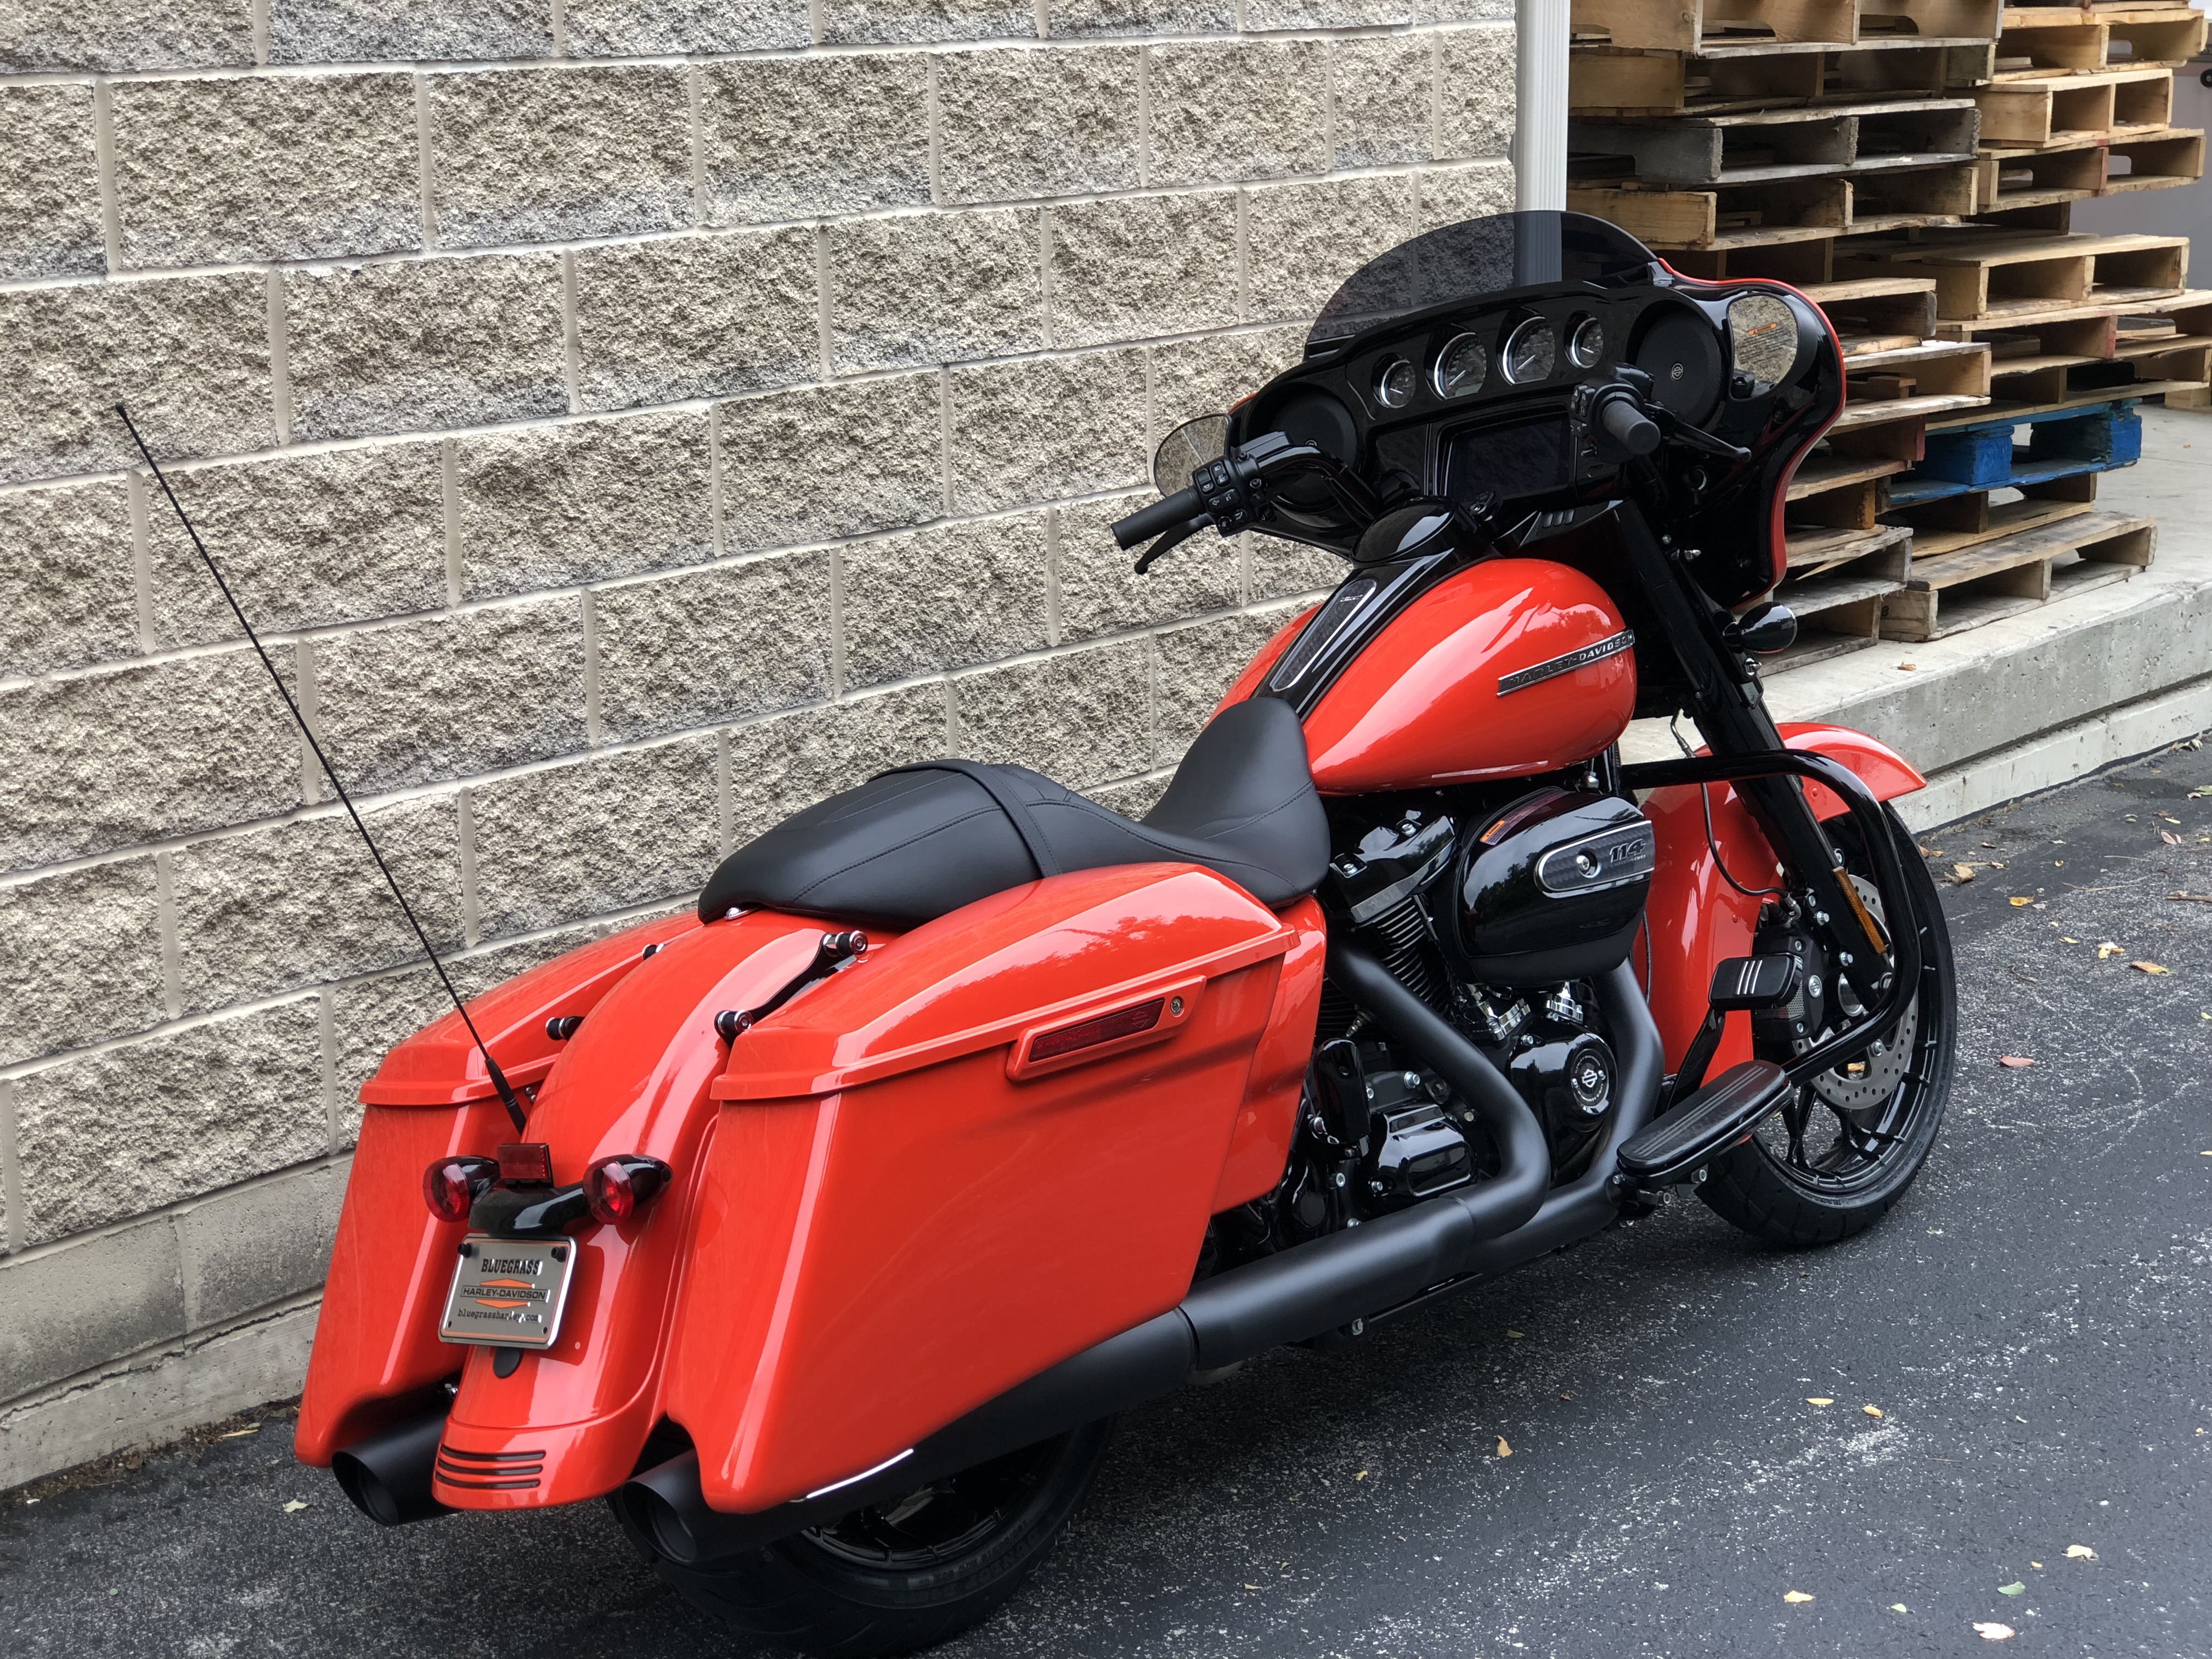 Prime New 2020 Harley Davidson Street Glide Special In Fort Wayne Unemploymentrelief Wooden Chair Designs For Living Room Unemploymentrelieforg